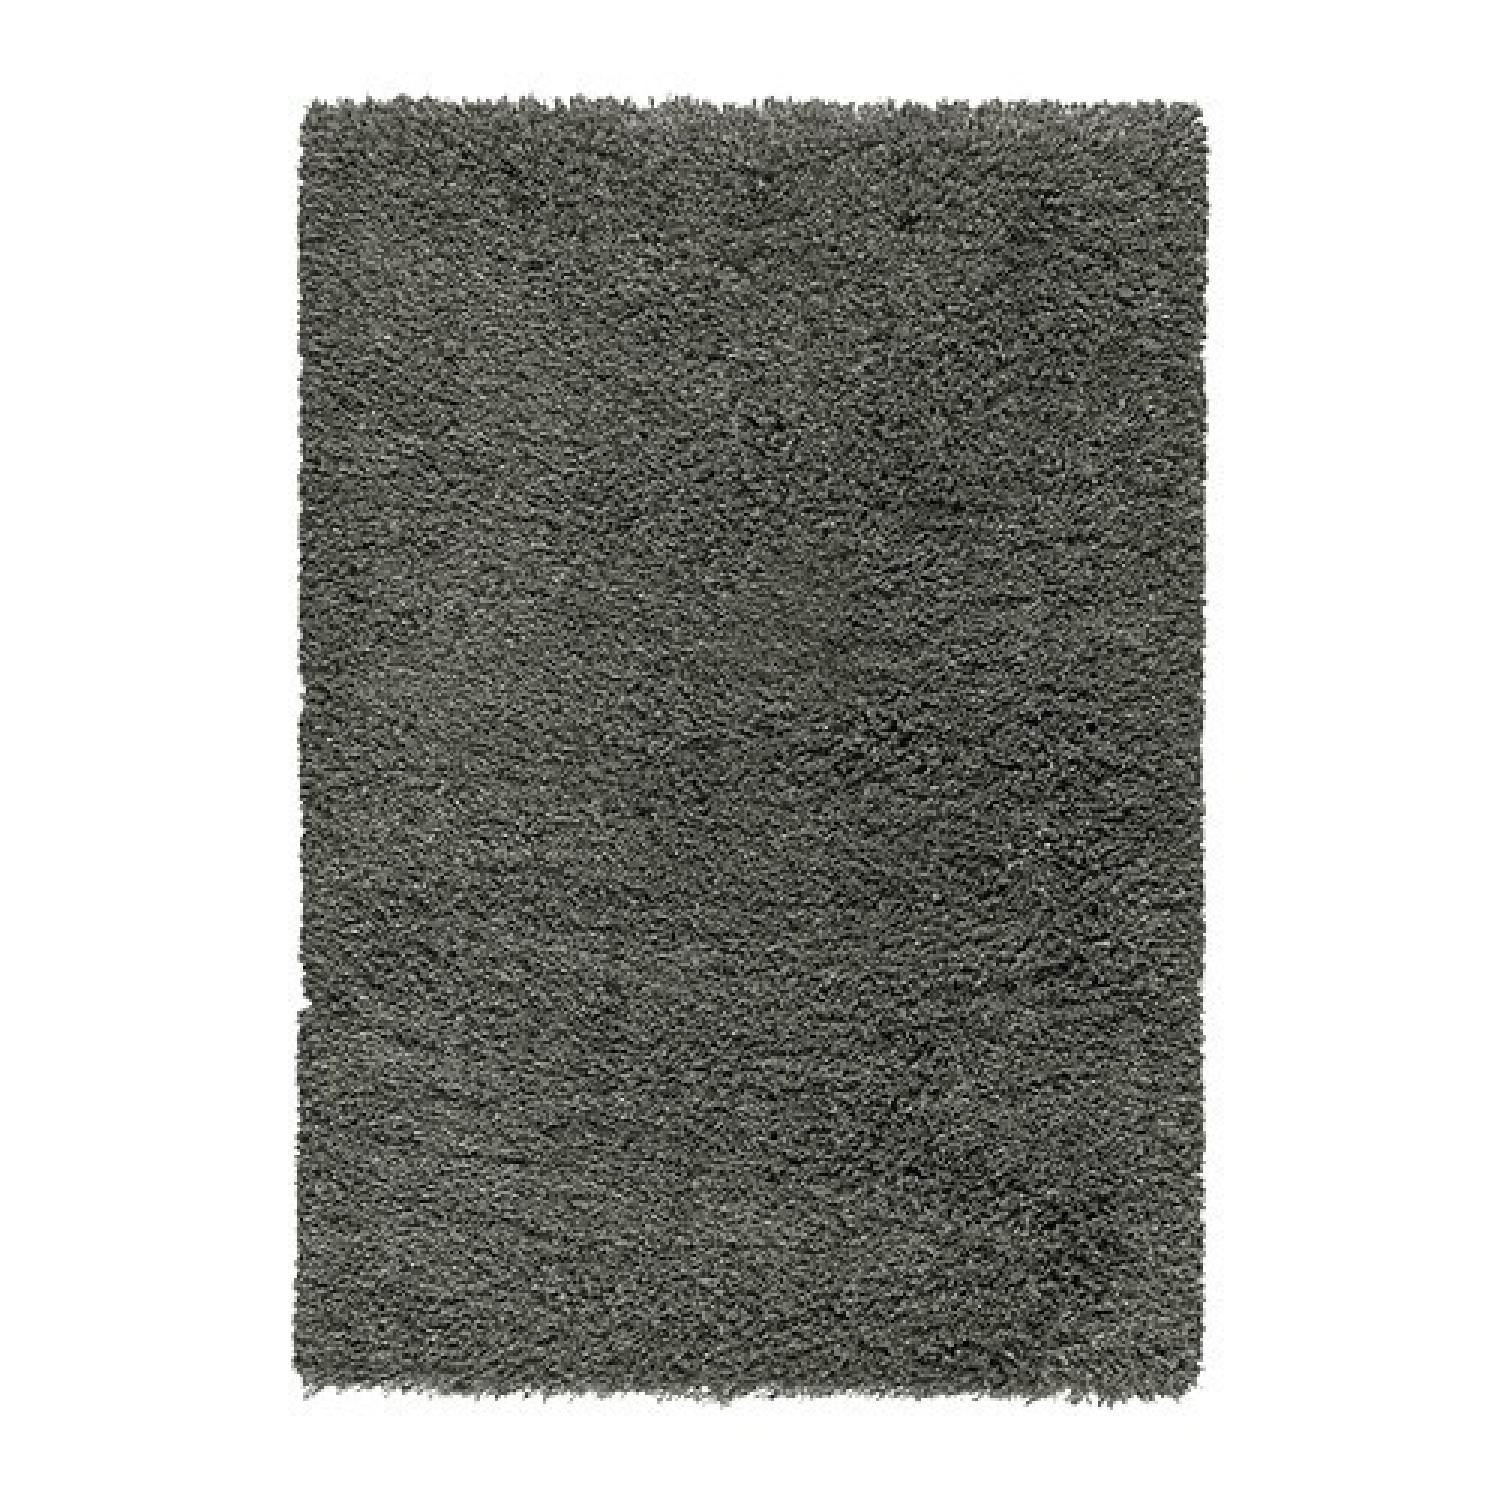 Ikea Gaser High Pile Area Rug